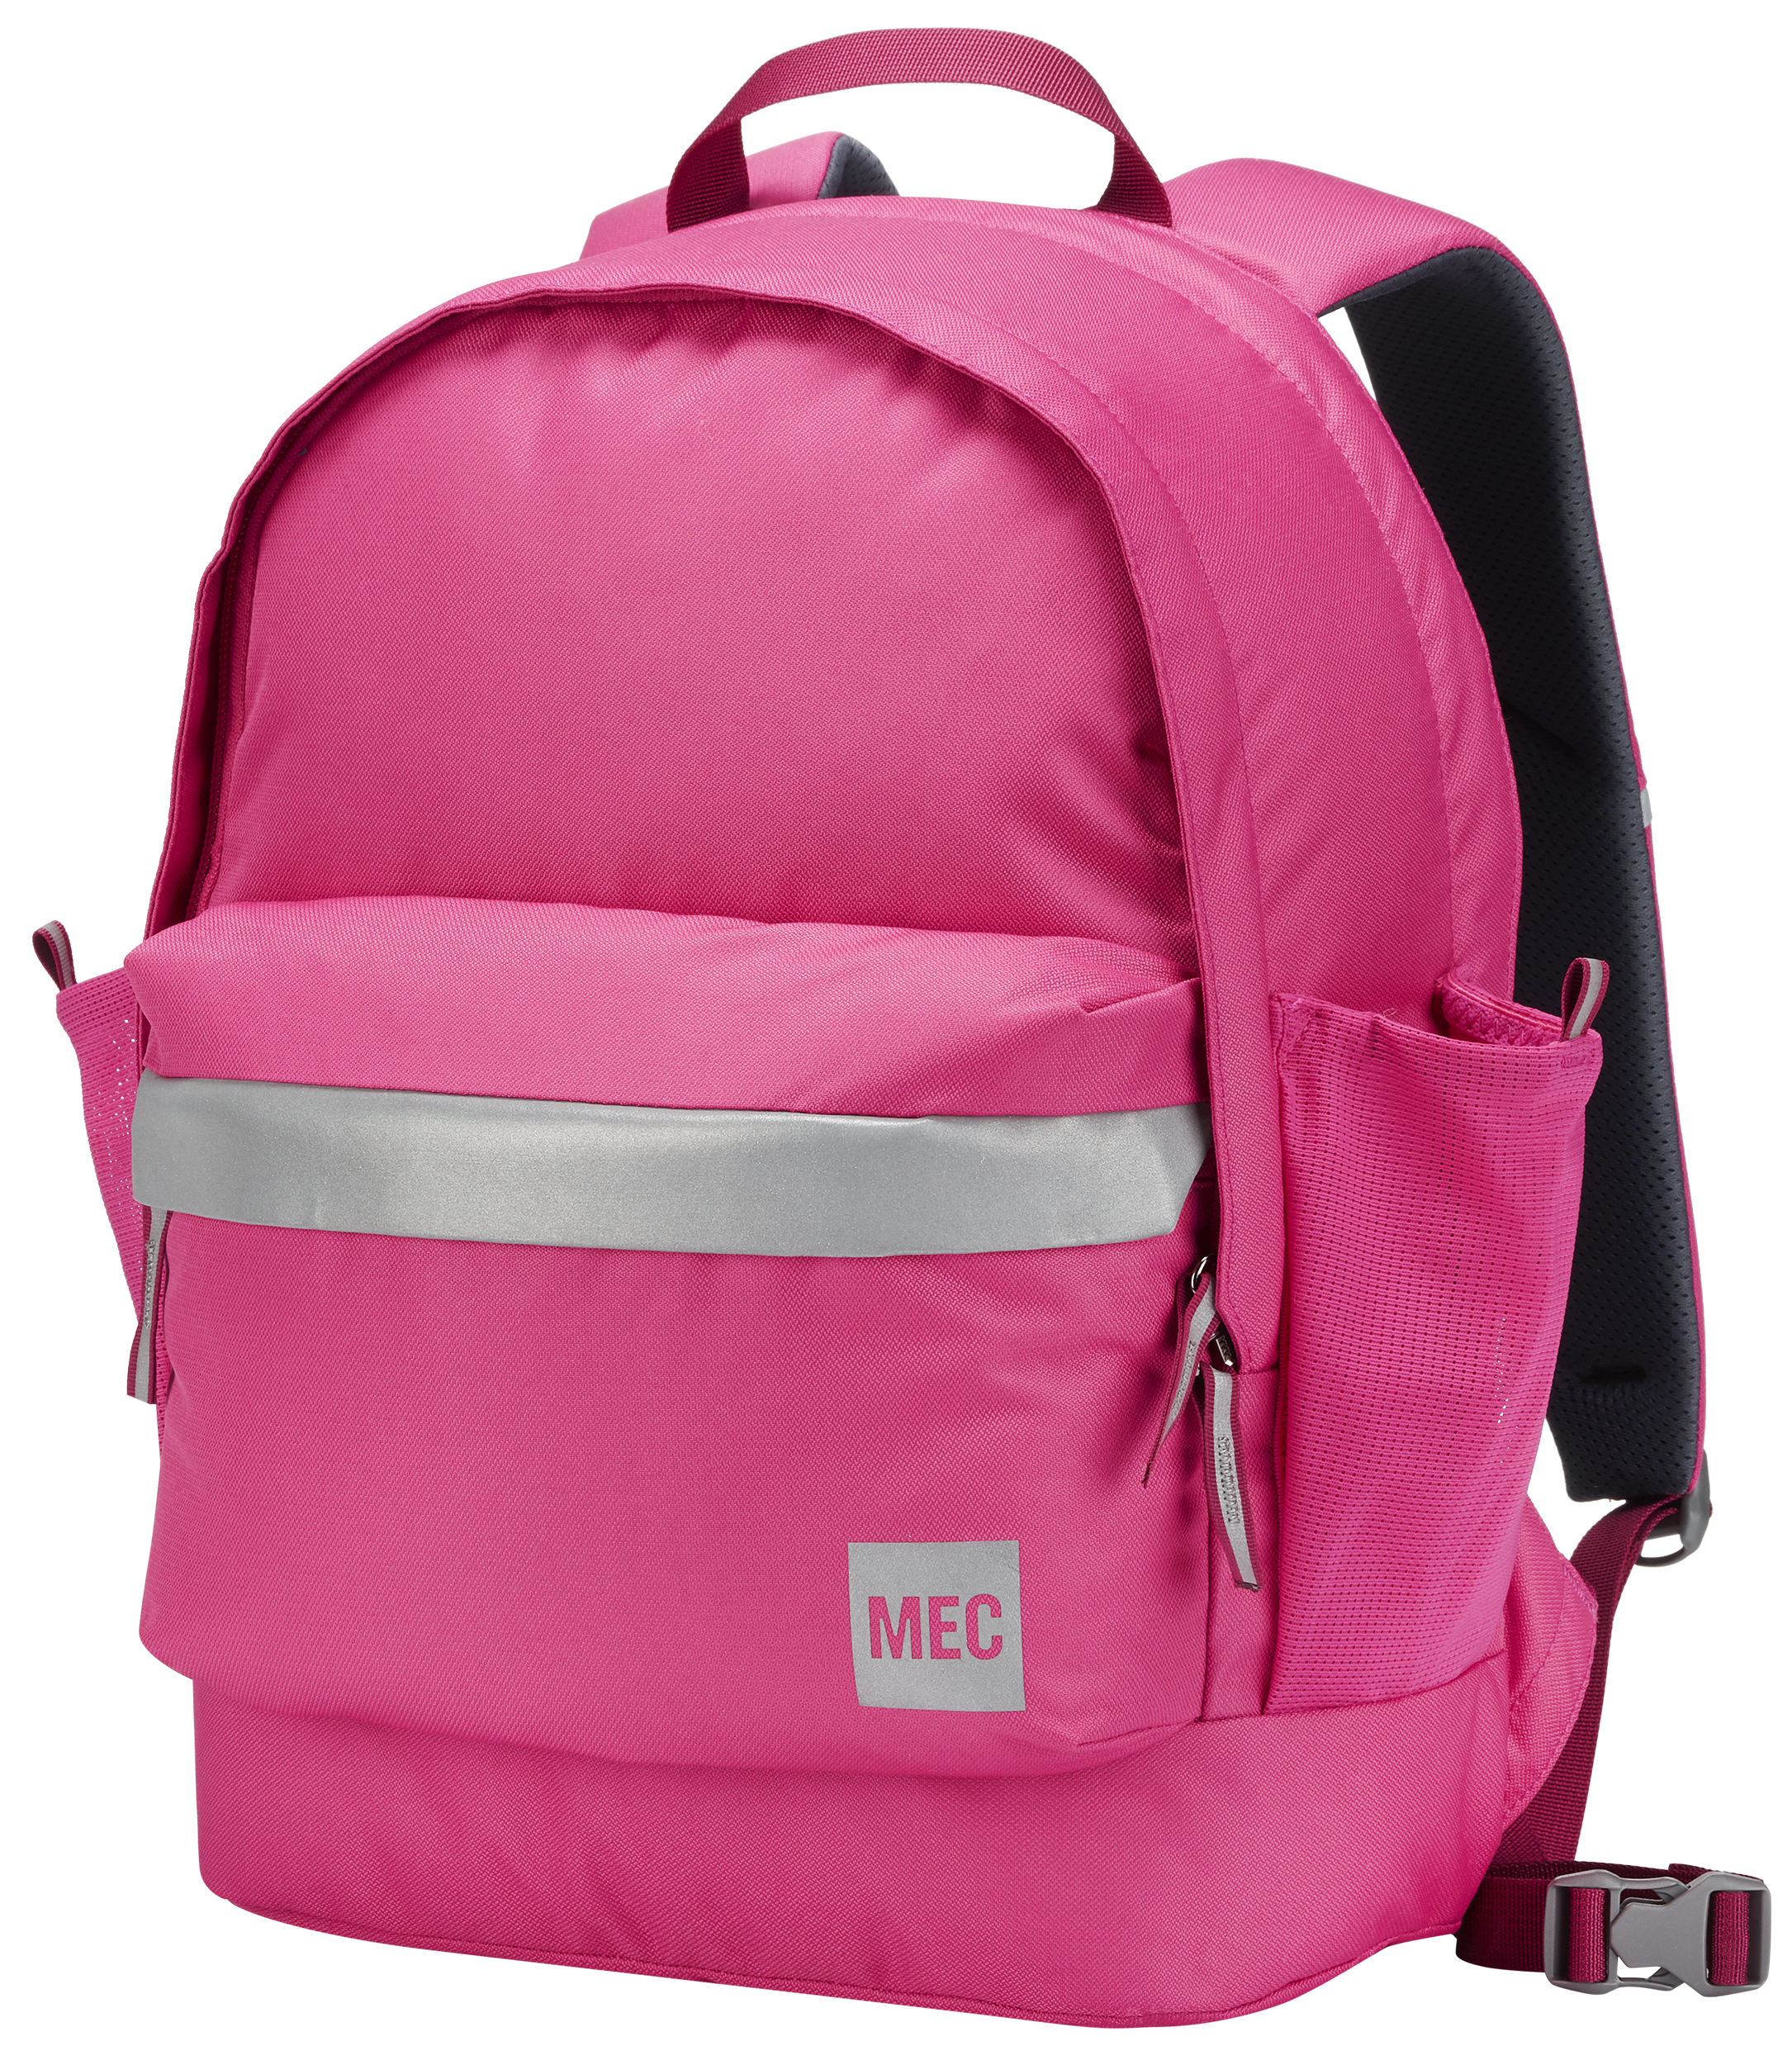 2a0652f77421 MEC Junior Book Bag - Children to Youths